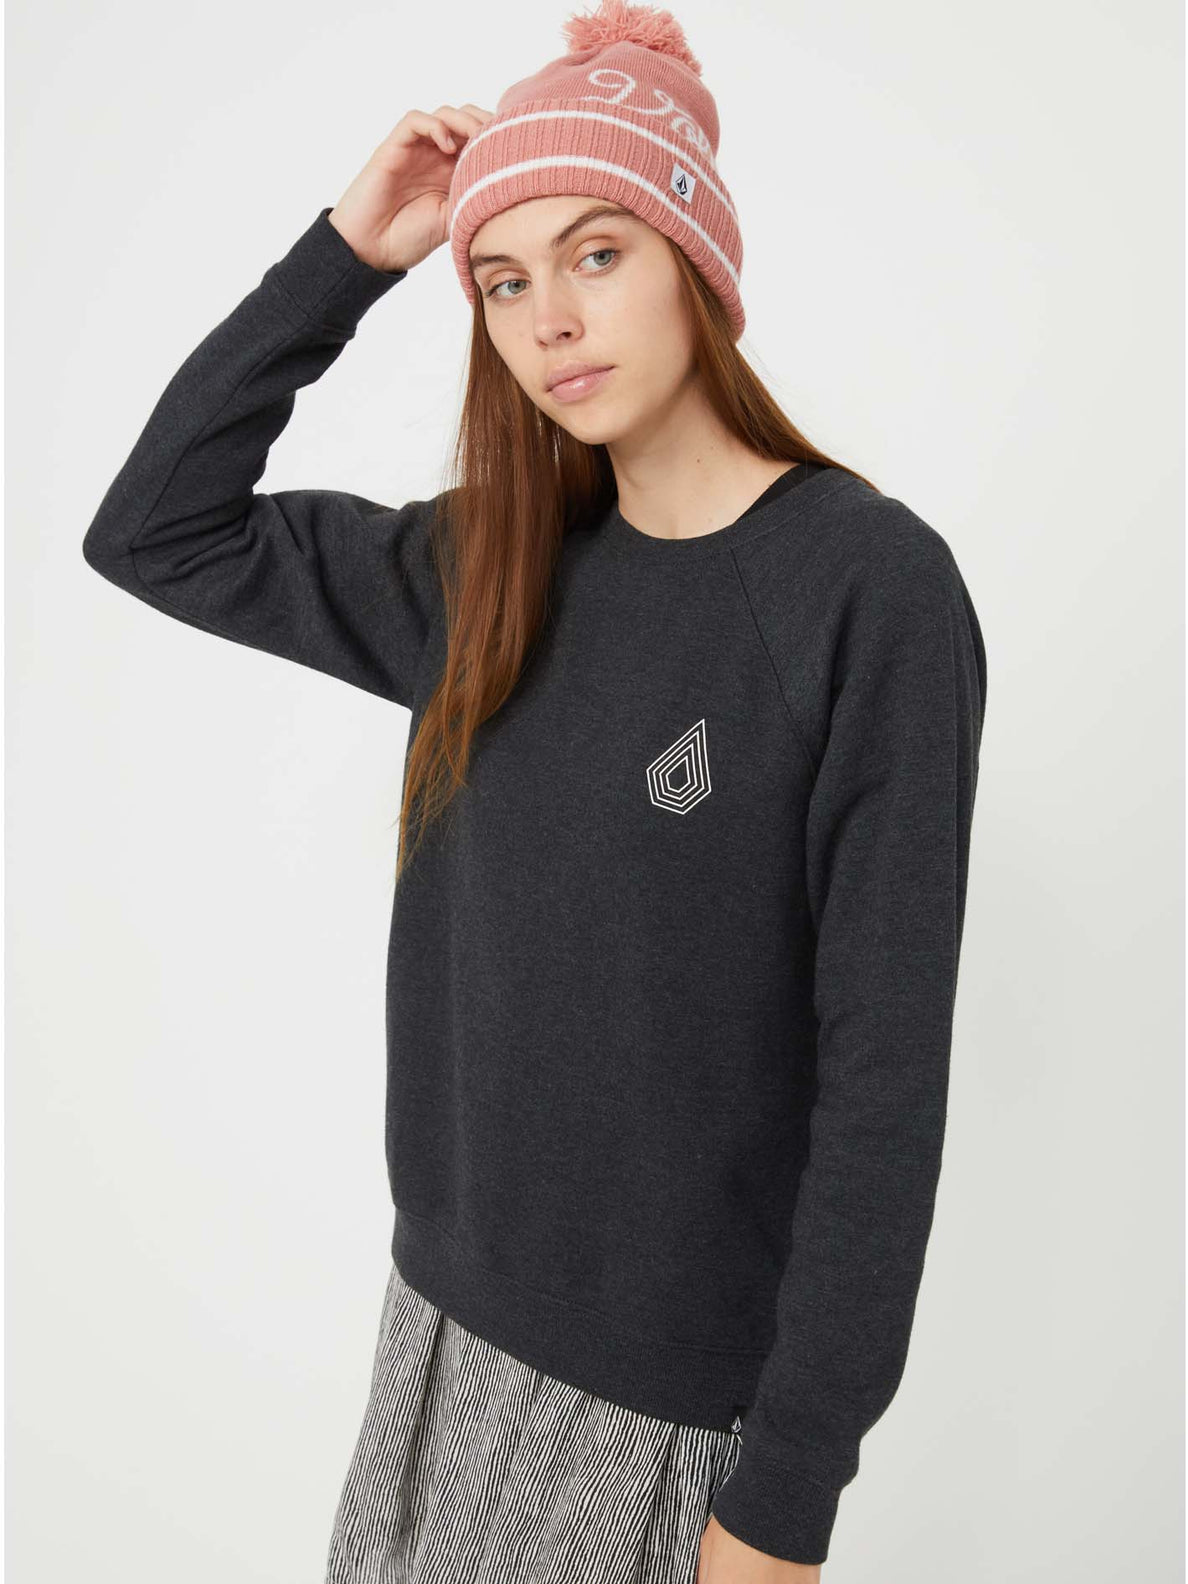 Get More Crew Sweater - Black Combo